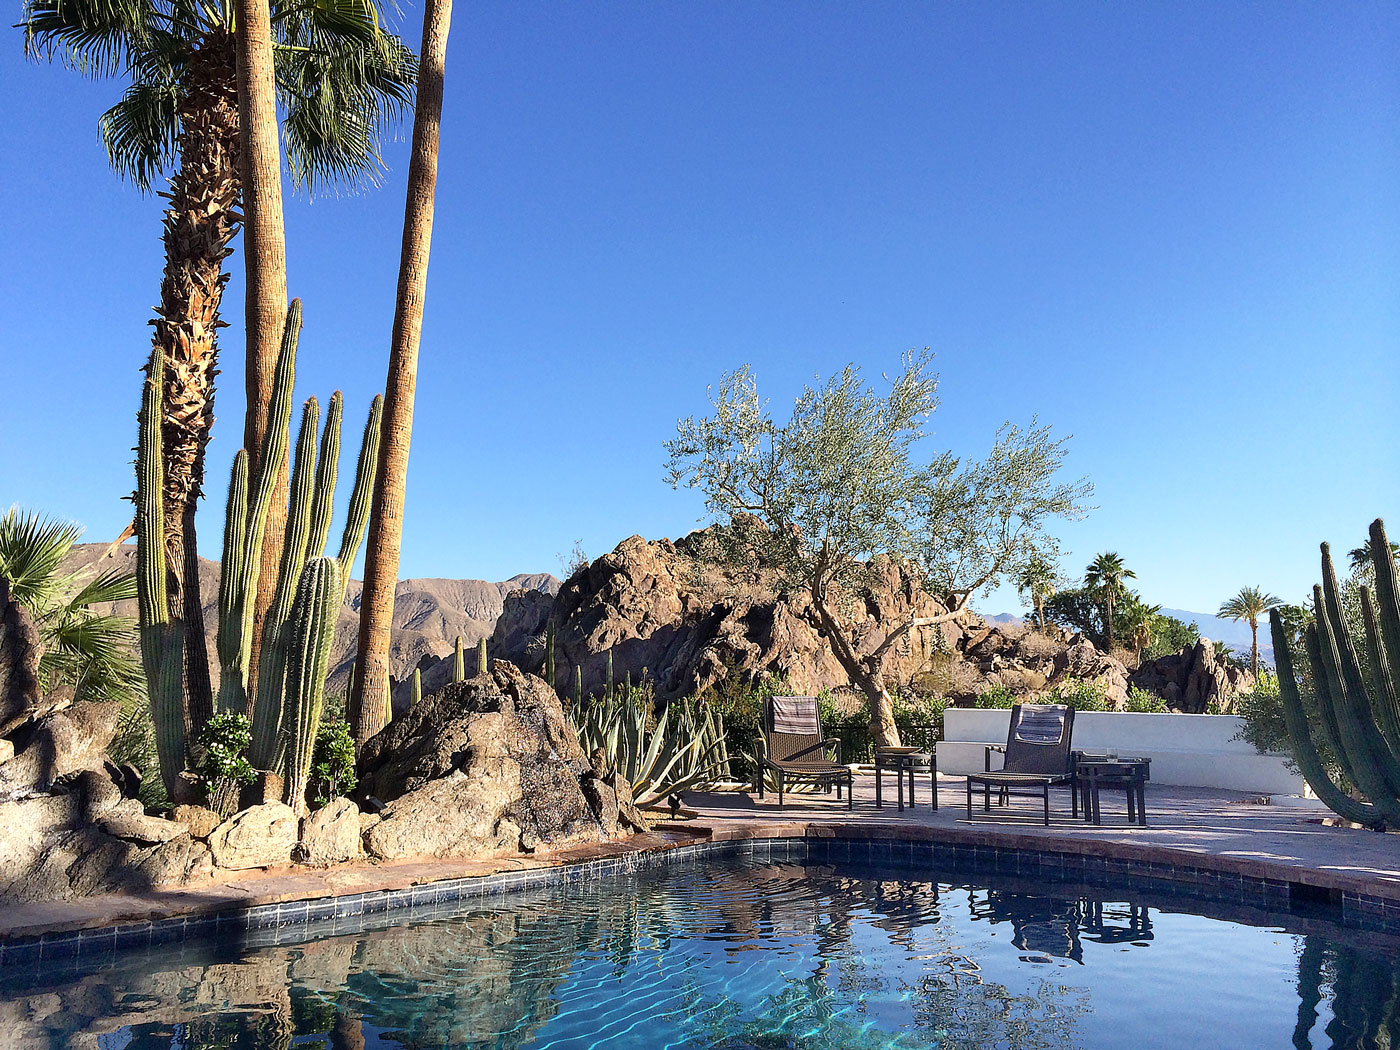 02 Oasis+pool+surrounded+by+mature+cactus+gardens+and+180+degree+mountain+views